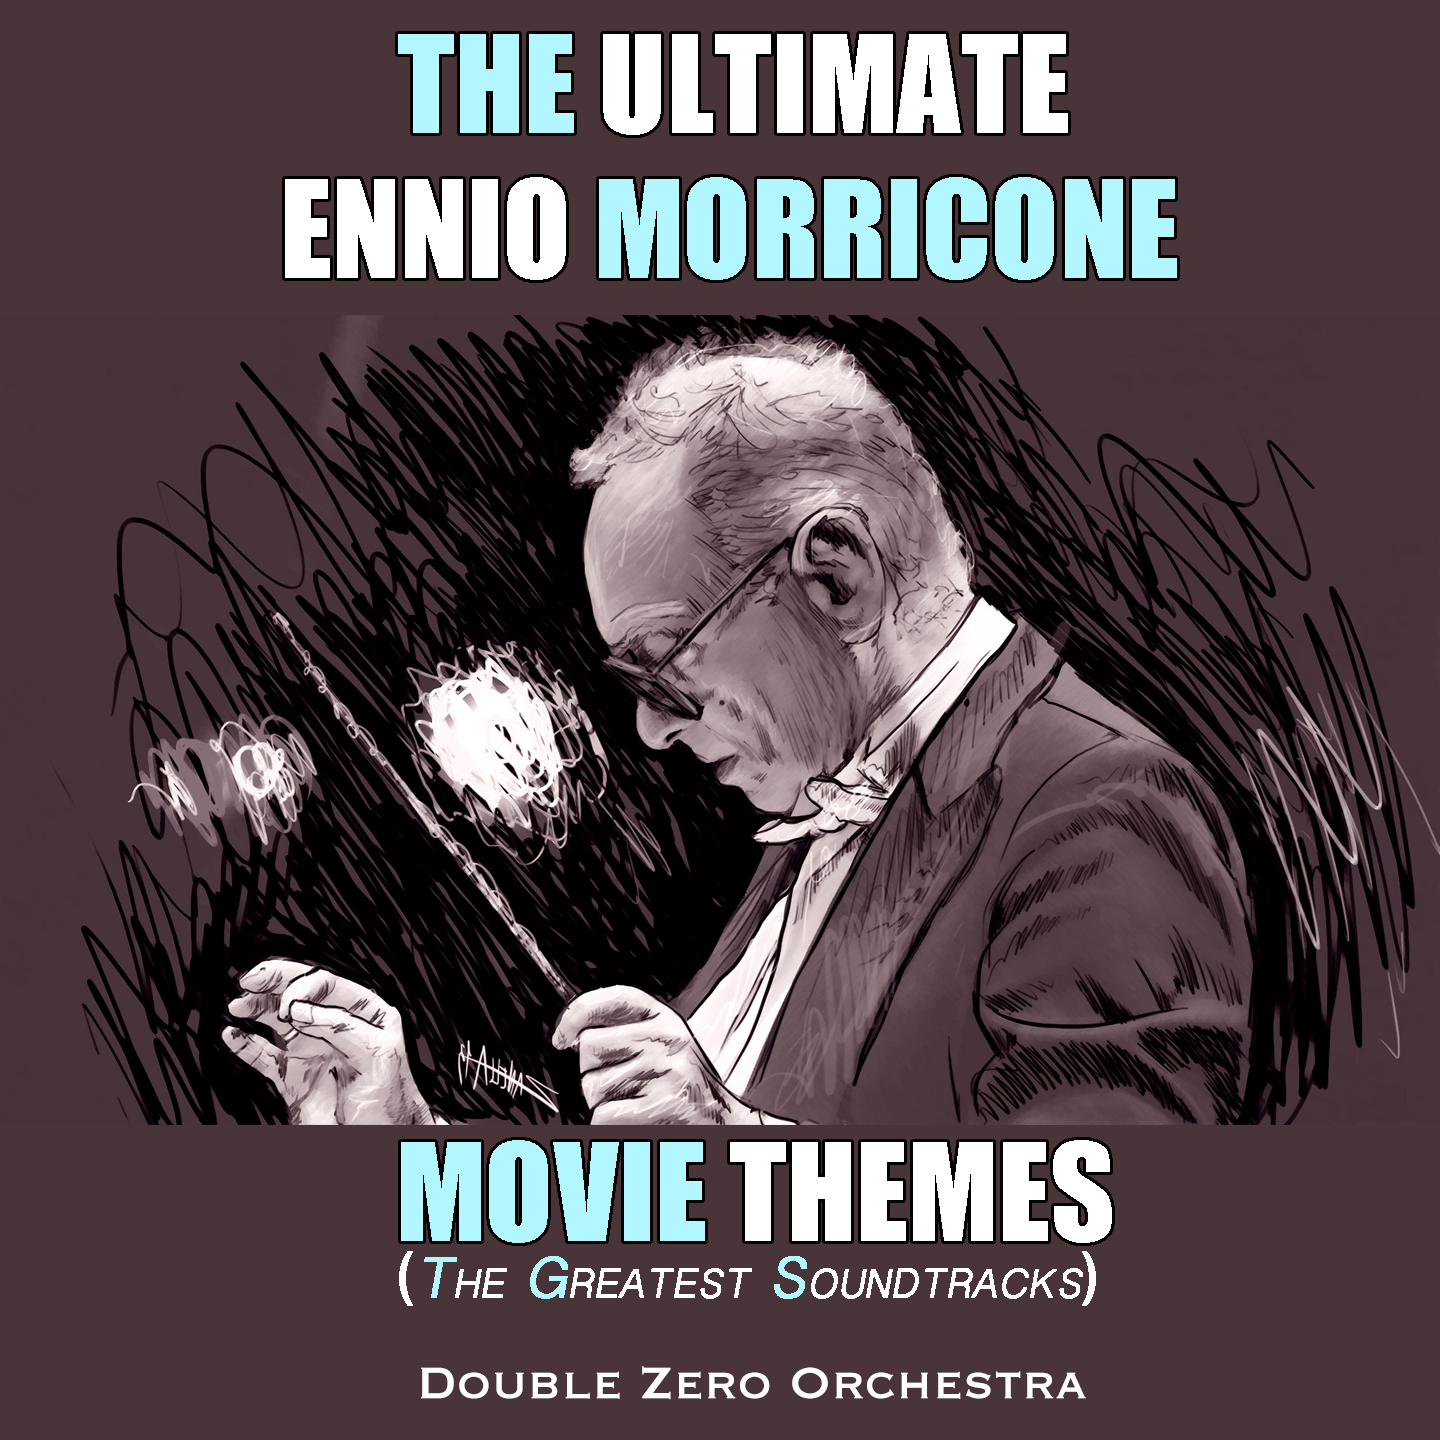 morricone-completo-eng